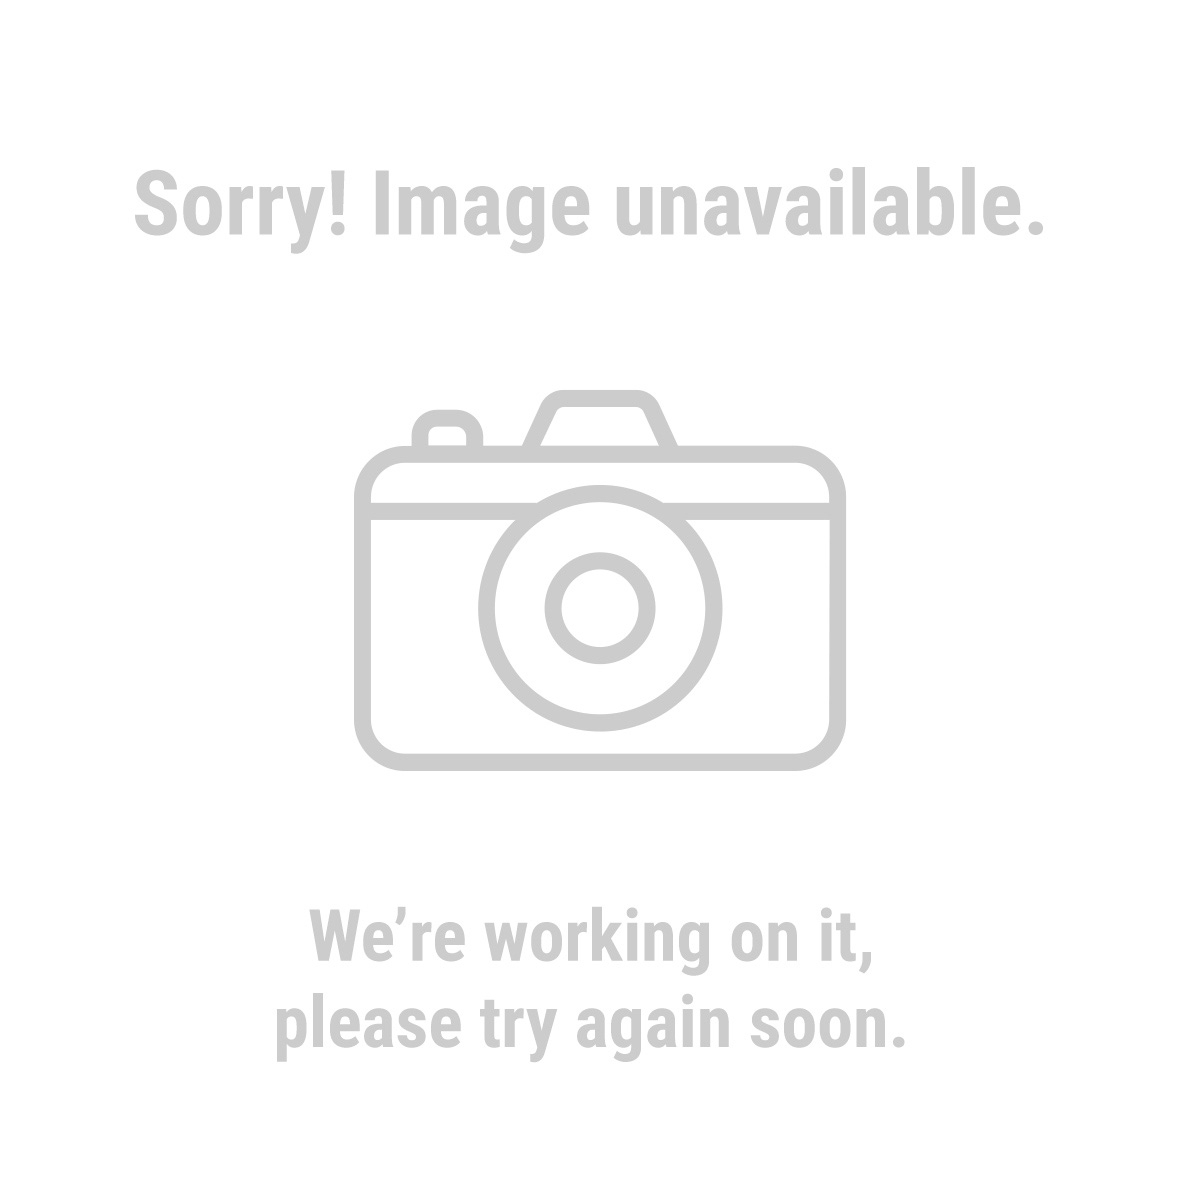 Warrior® 62401 3-3/8 in., 18 Tooth Circular Saw Blade